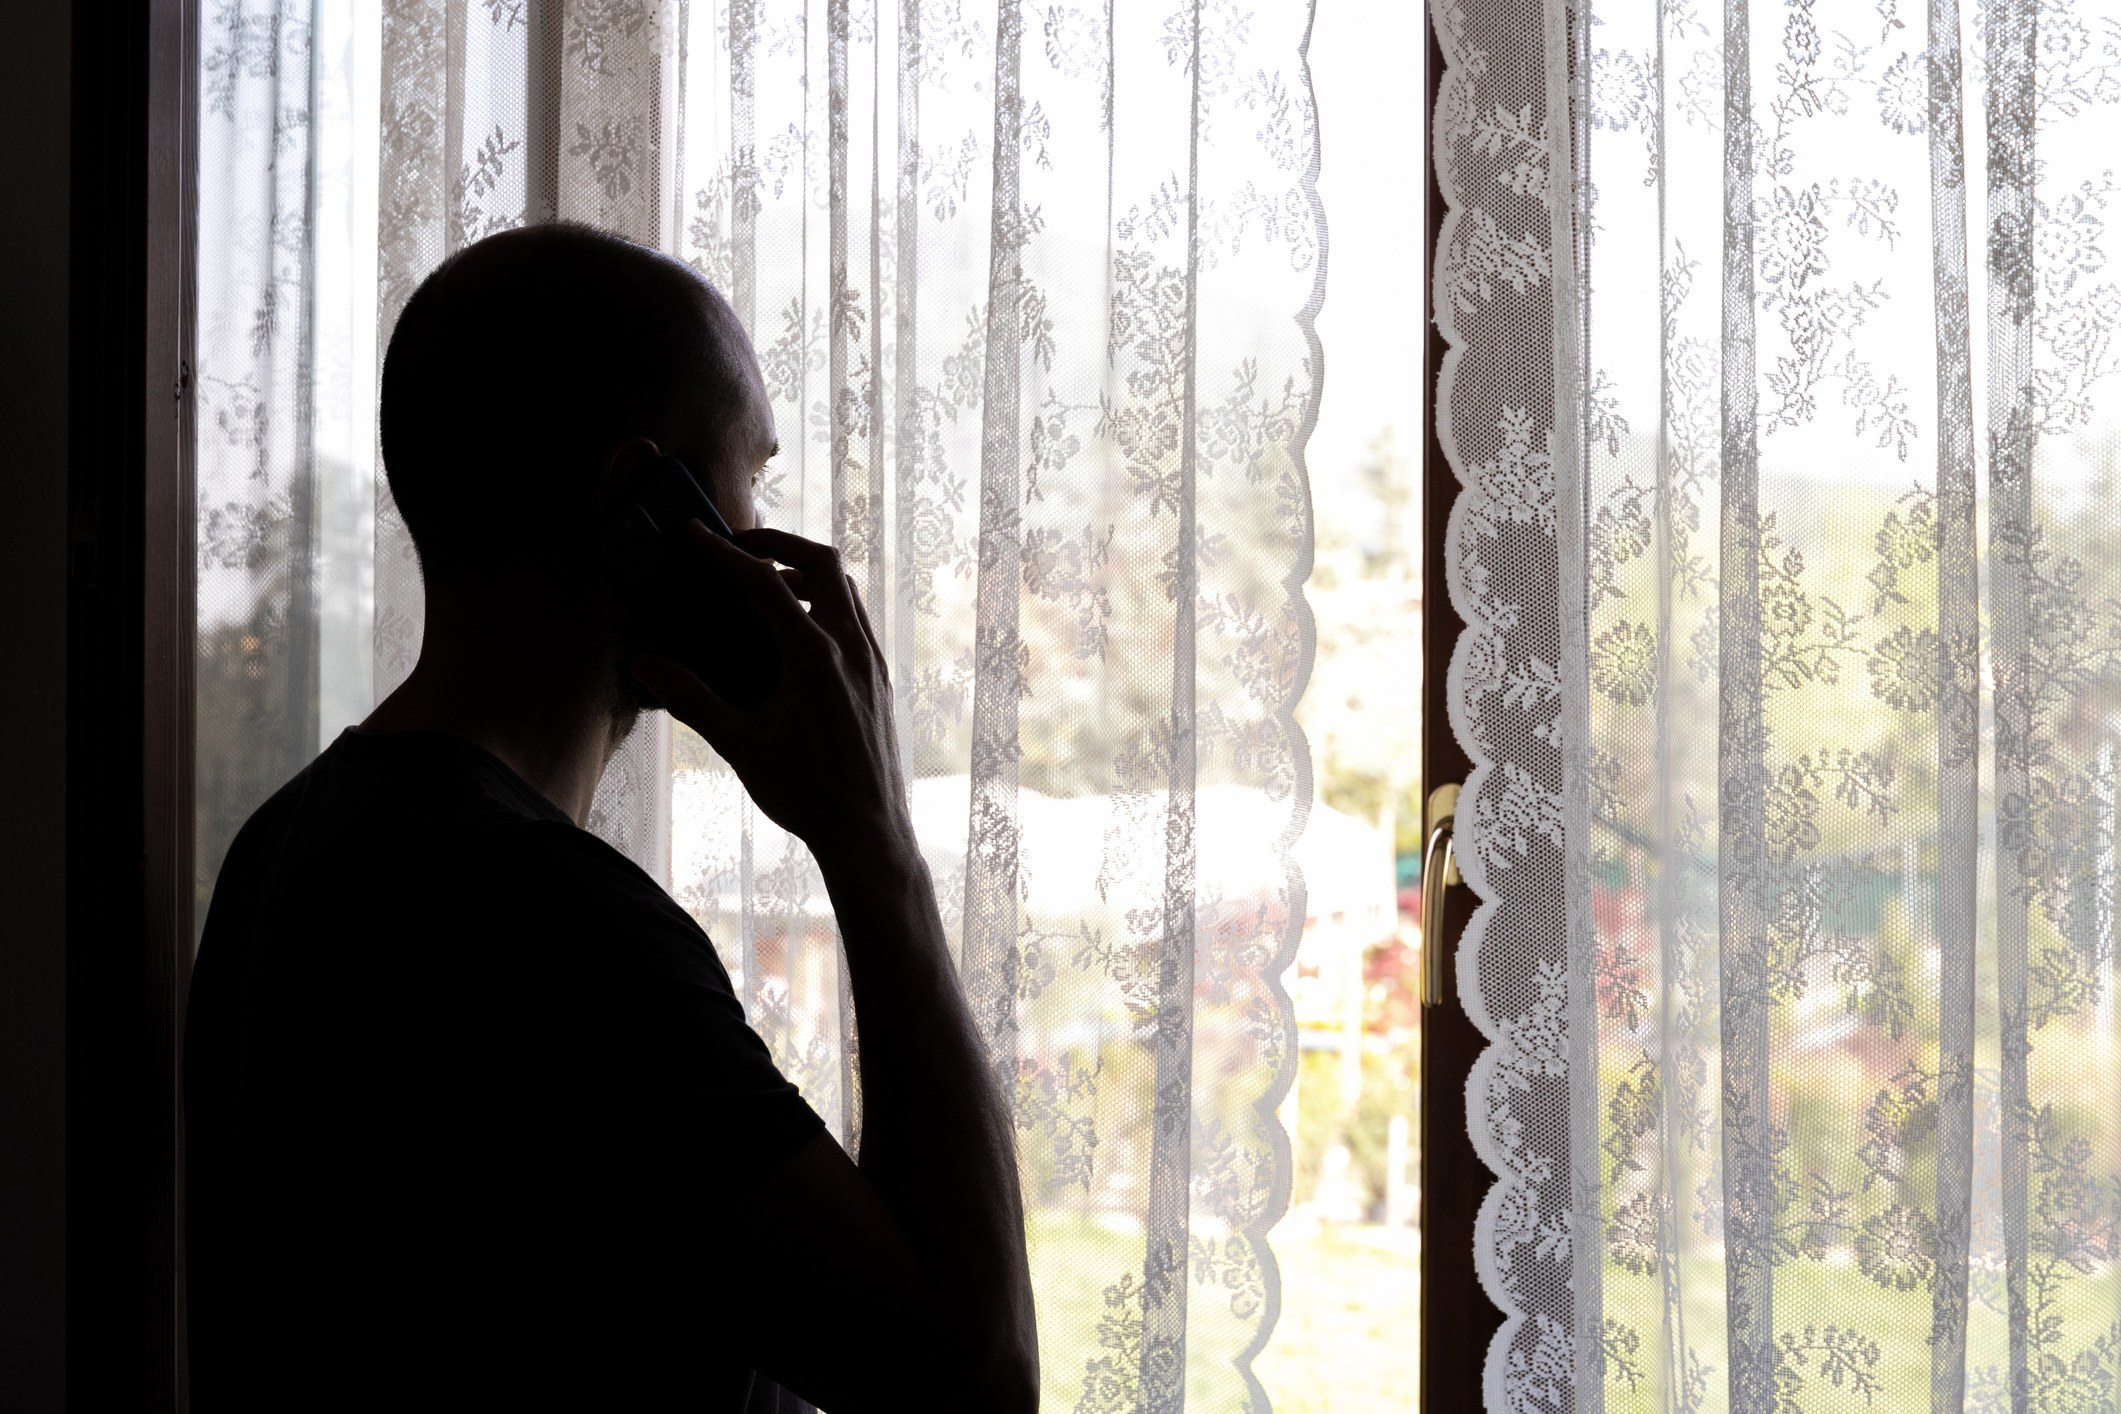 Someone alone in a room, looking out the window while talking on the phone